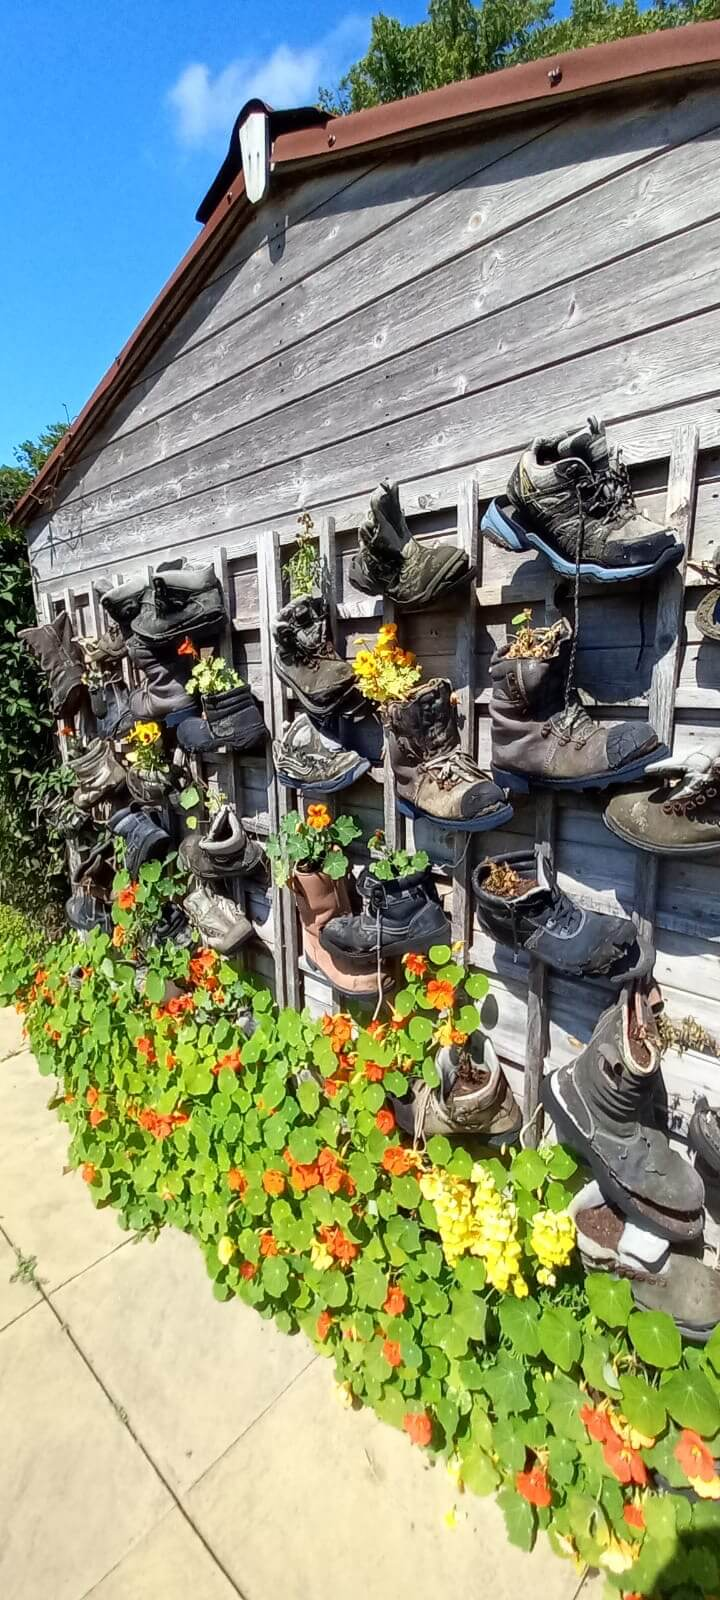 shed wall in the roots and shoots garden, decorated with rows of walking boots strung up by their laces and each filled with beautiful and colourful flowers